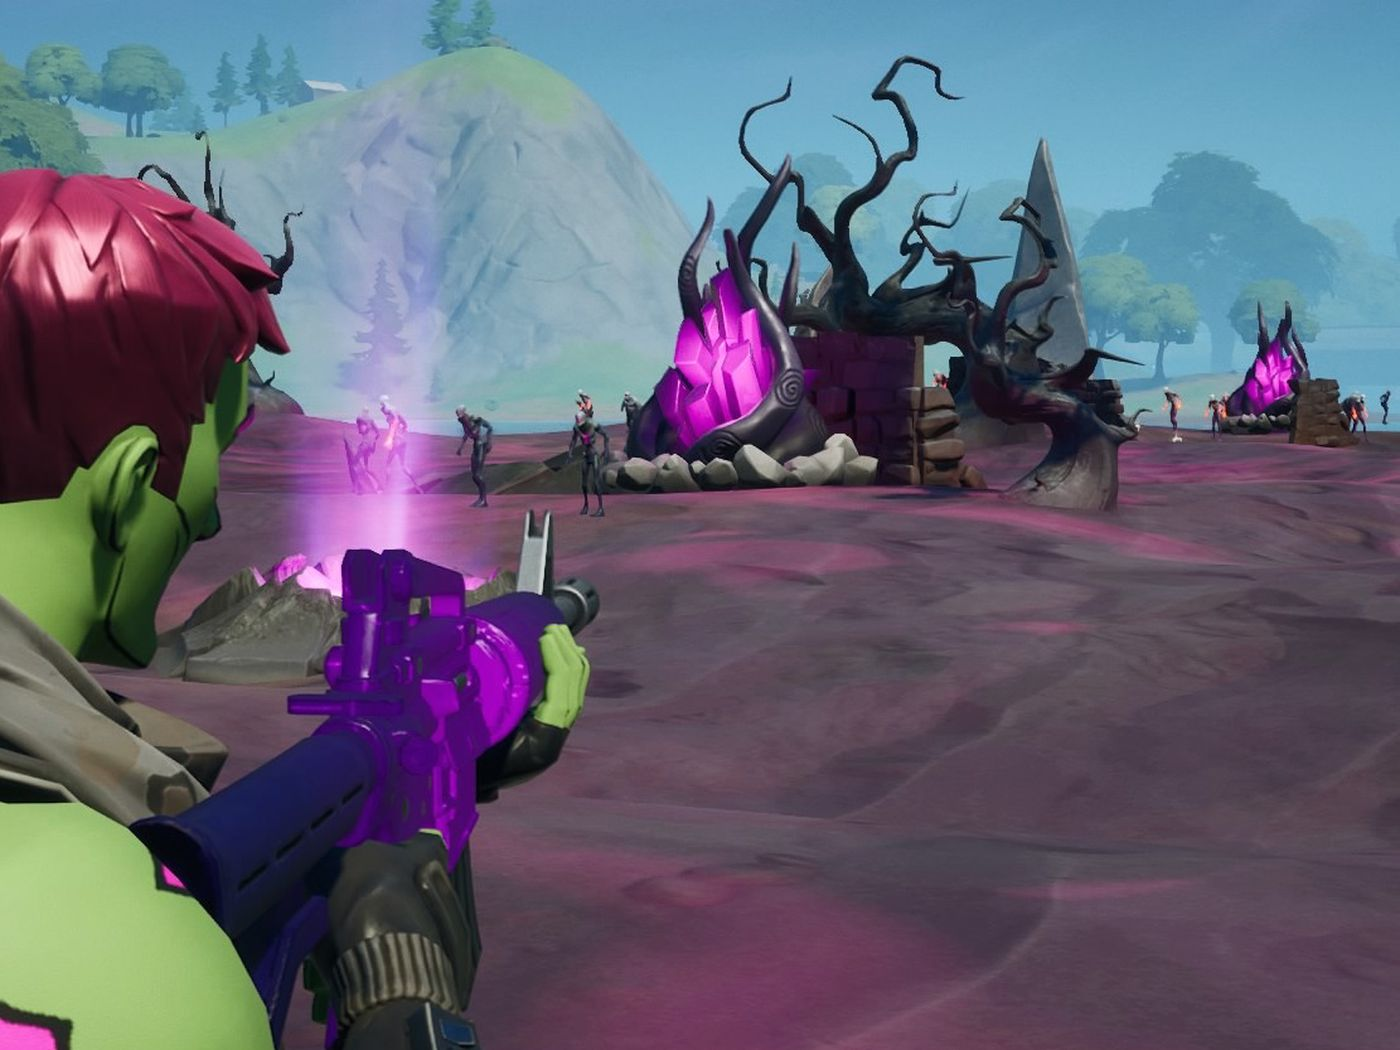 Fortnite S New Island Has Already Changed Just In Time For Halloween The Verge